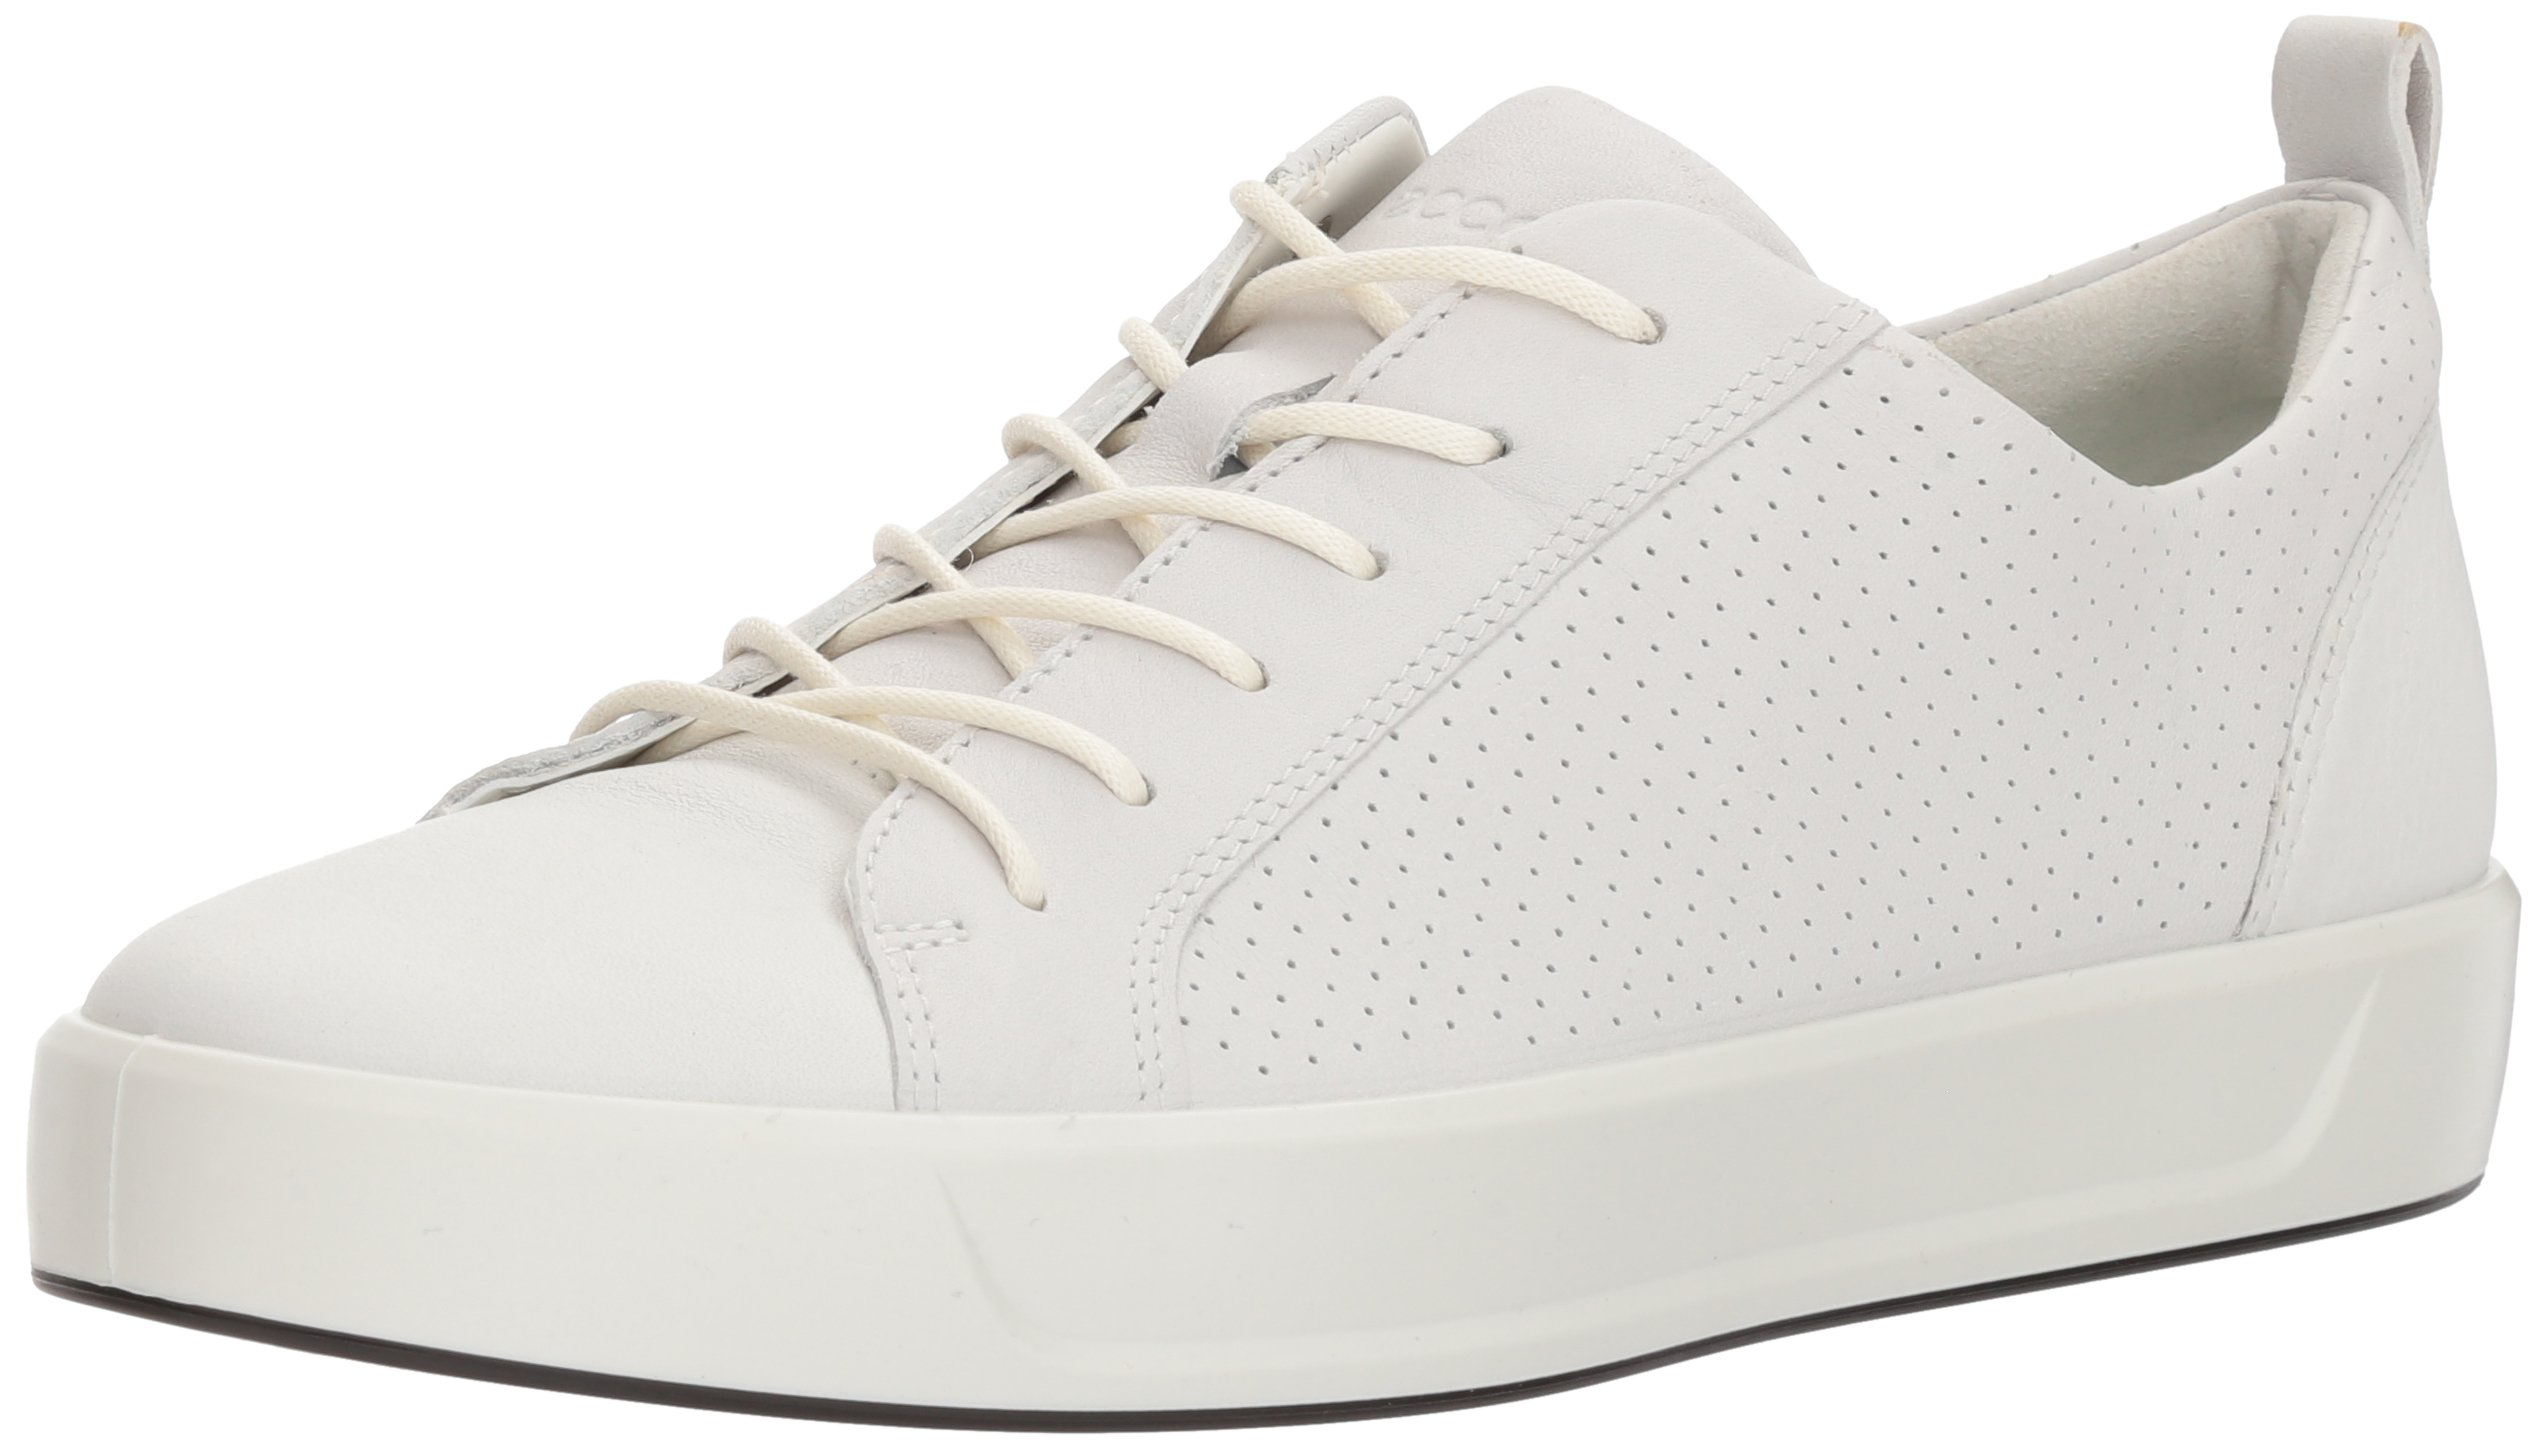 ECCO Women's Women's Soft 8 Perforated Tie Sneaker, White, 42 M EU (11-11.5 US)